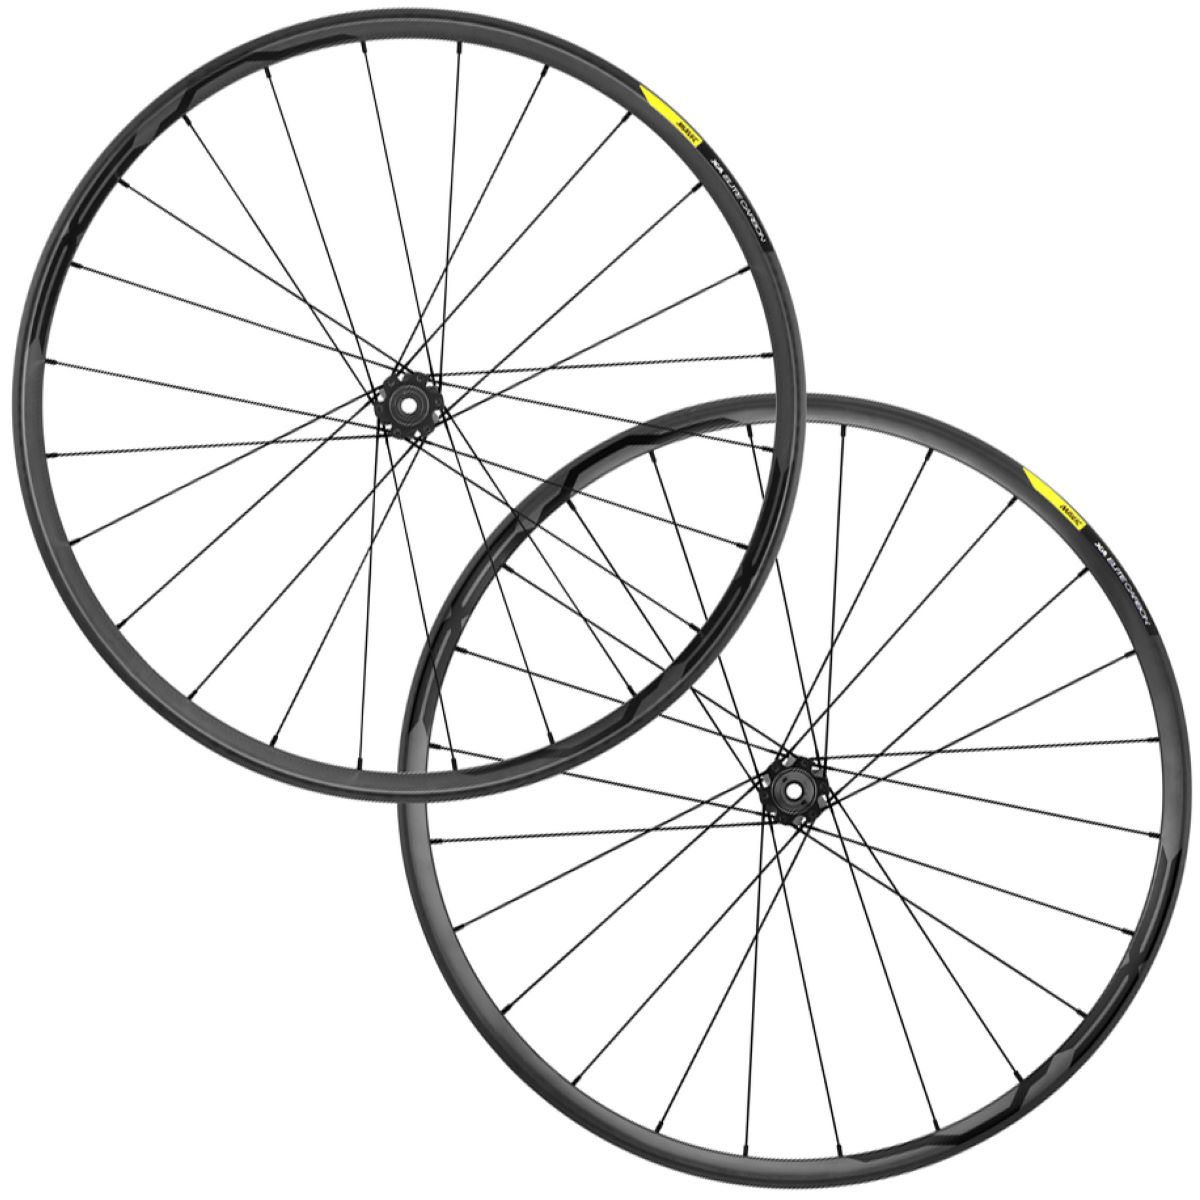 Mavic XA Elite Carbon Wheelset - Wheel sets